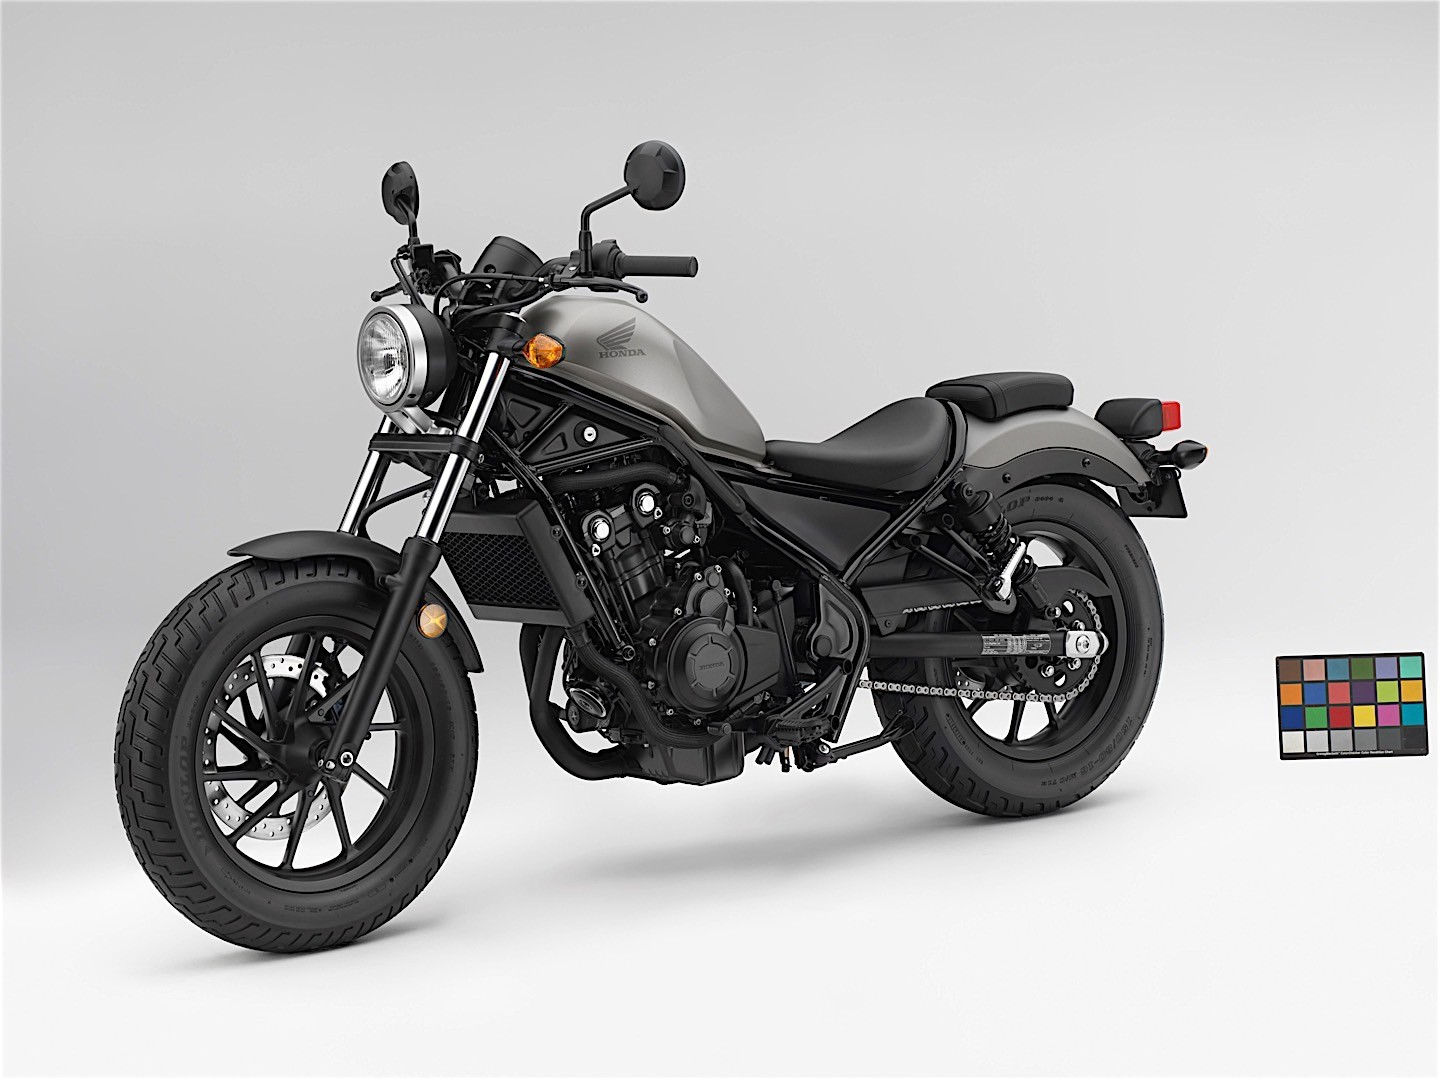 Honda Unveils New Rebel 500 For 2017